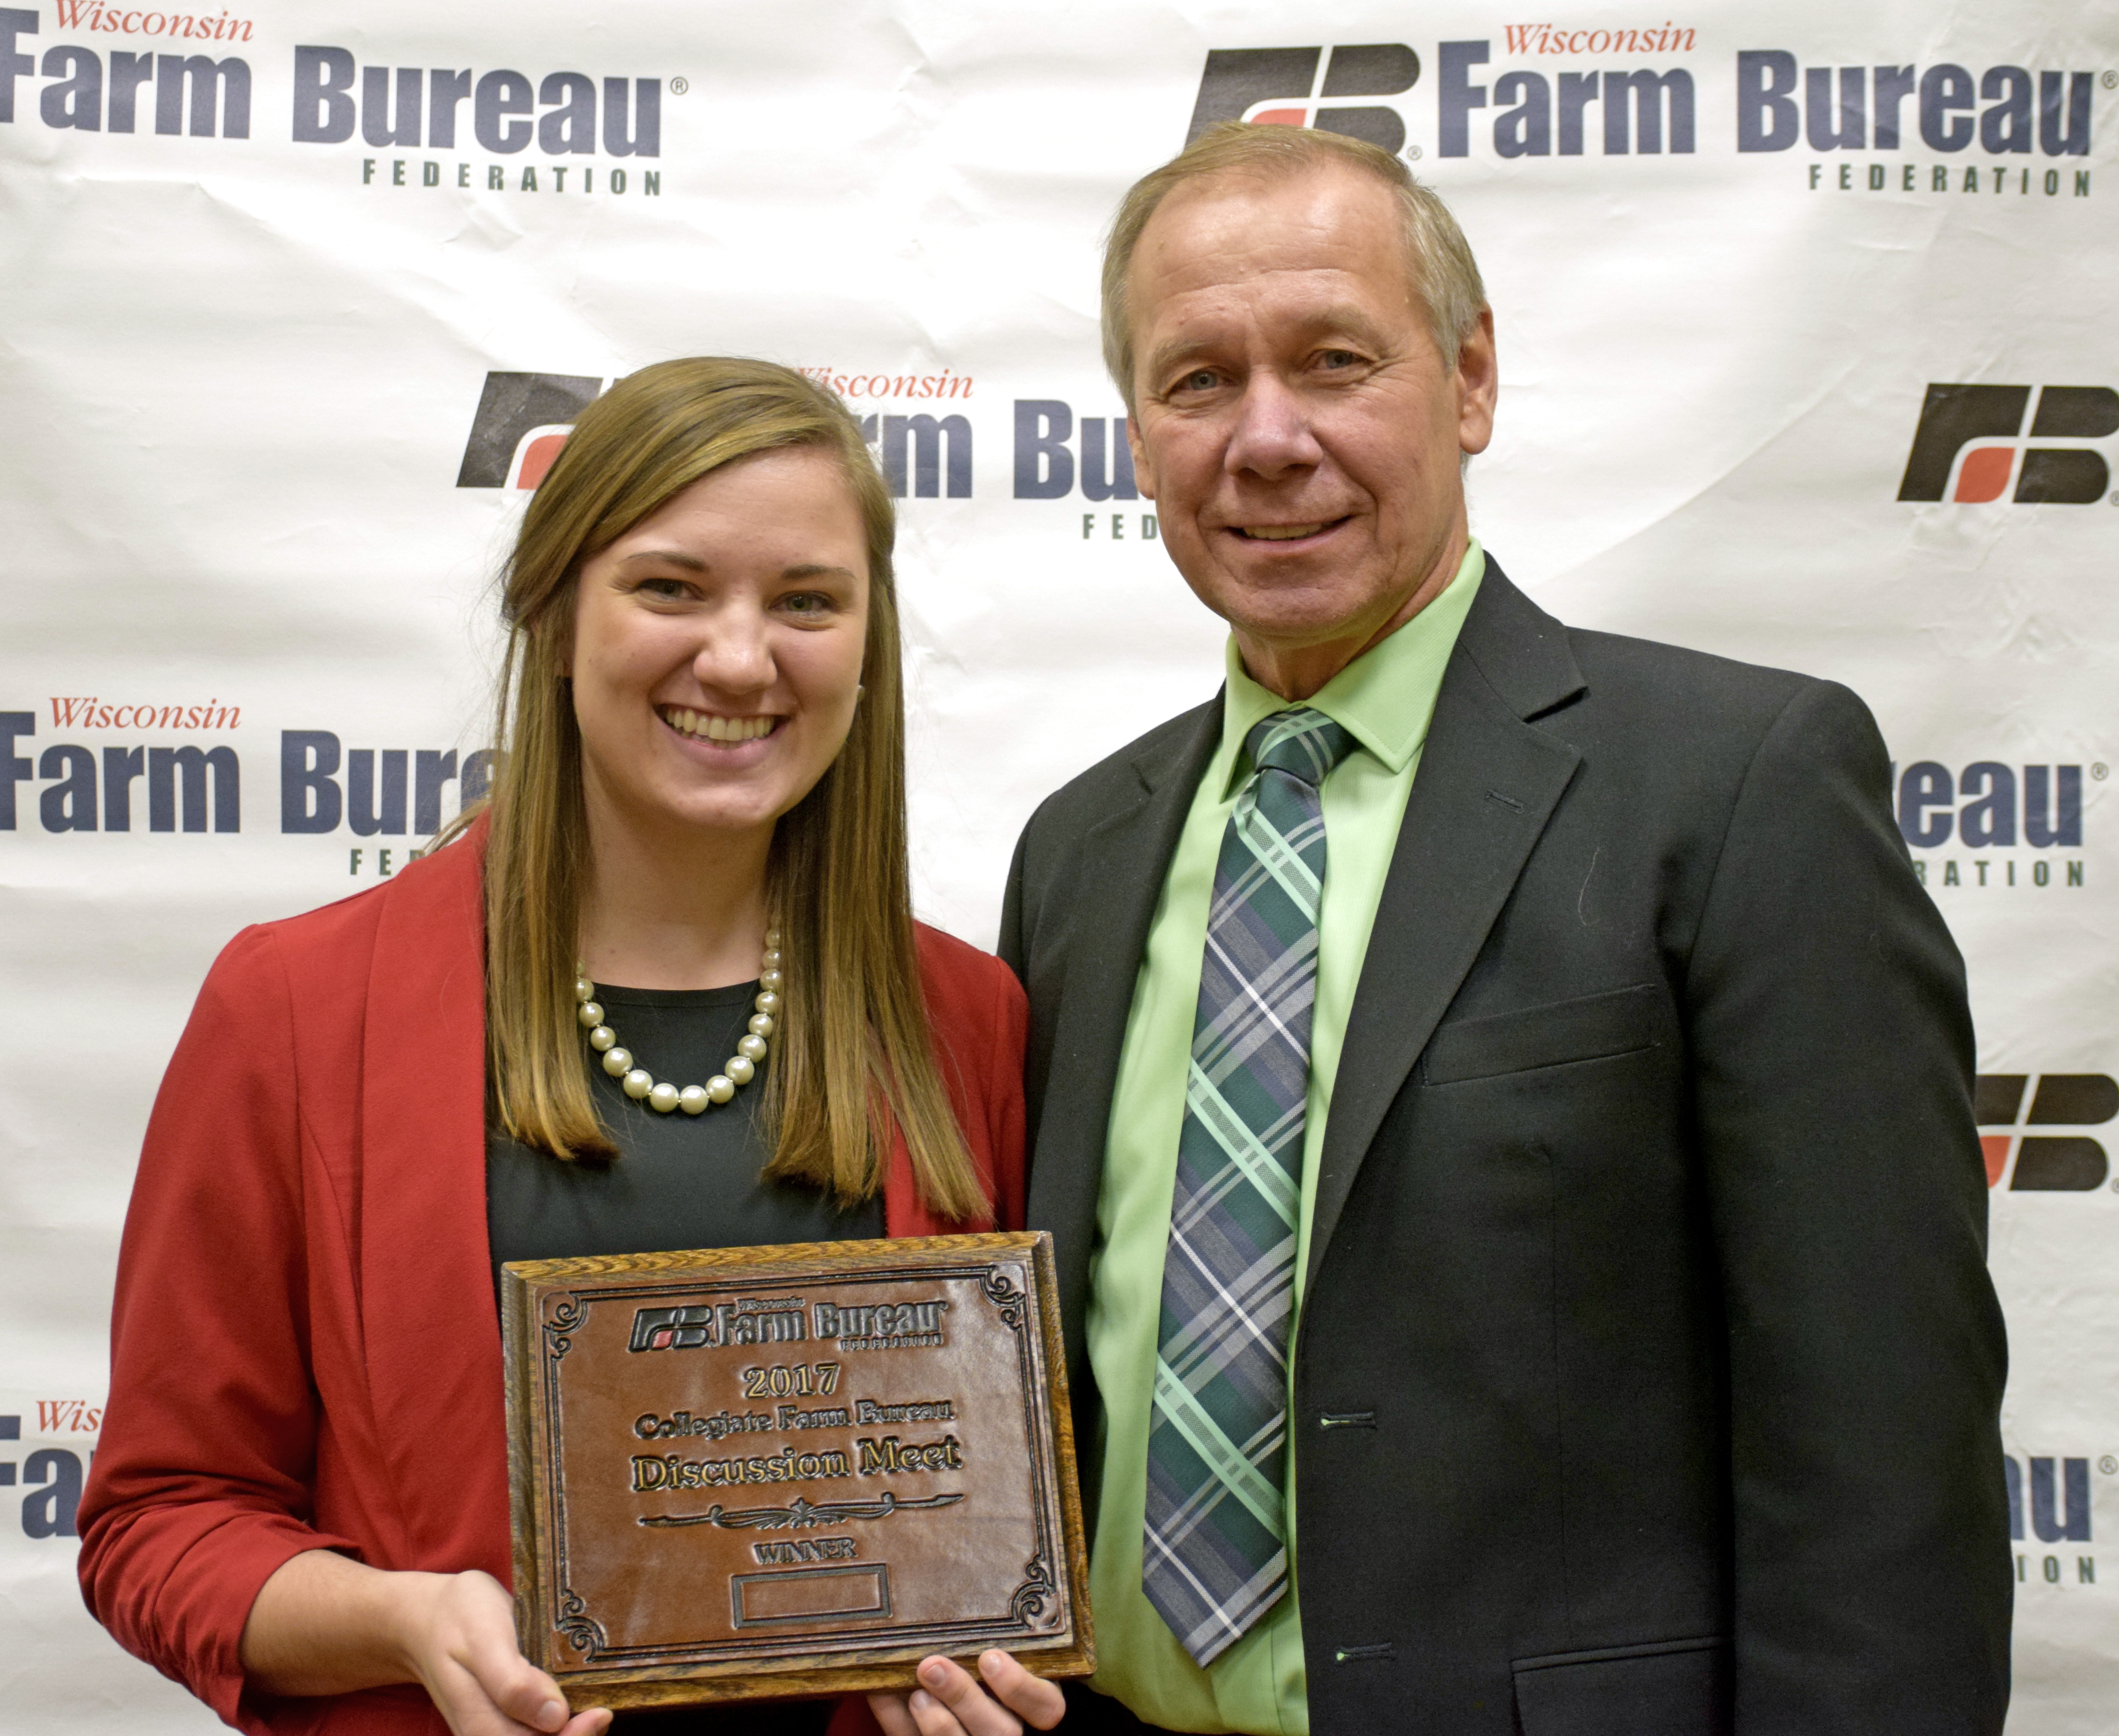 Alison Wedig Farm Bureau's Collegiate Discussion Meet Winner